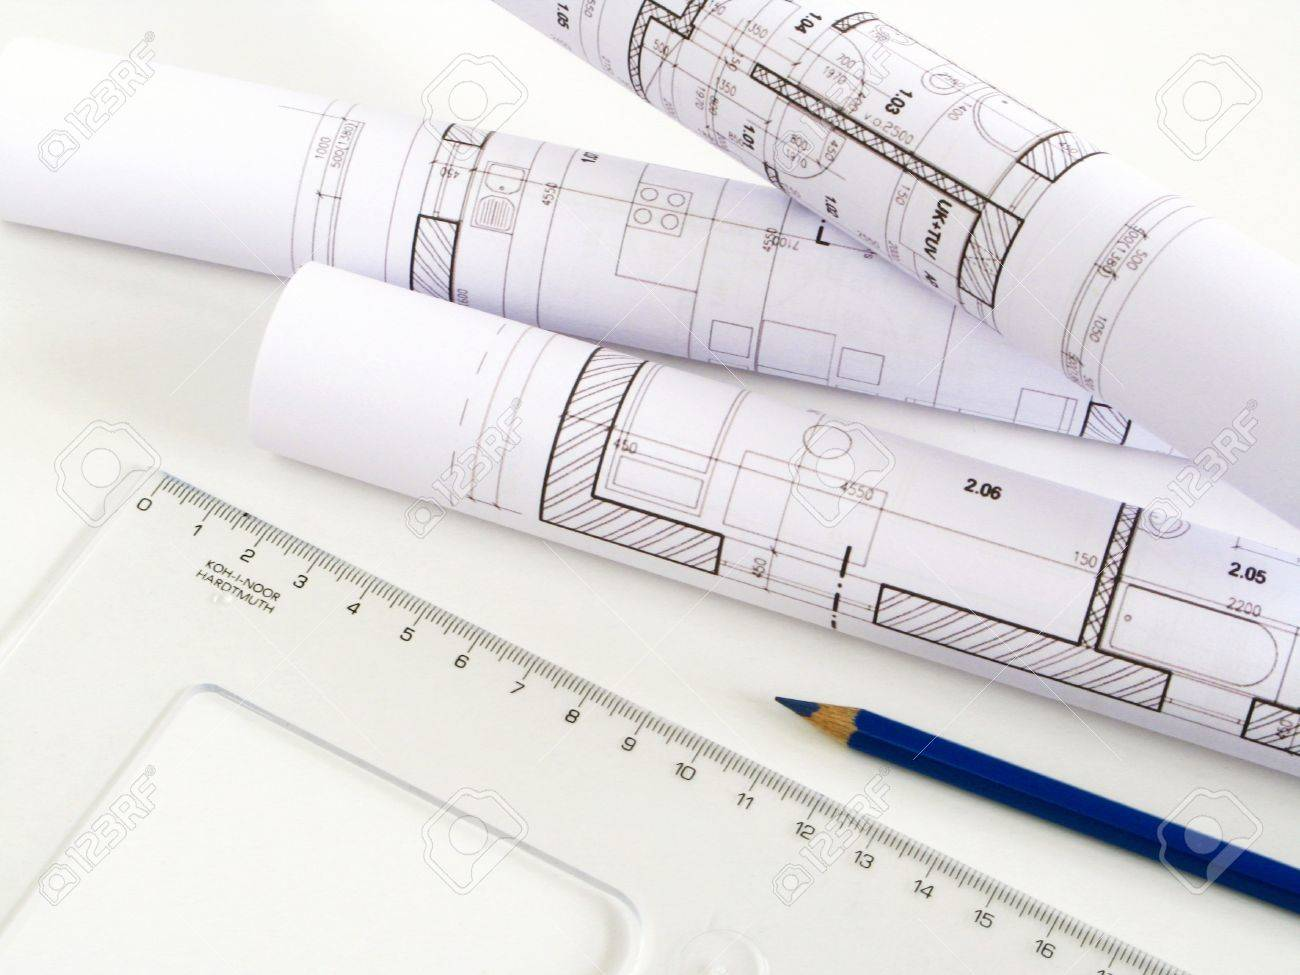 Architectural Sketch Of House Plan Stock Photo  Picture And    Stock Photo   architectural sketch of house plan